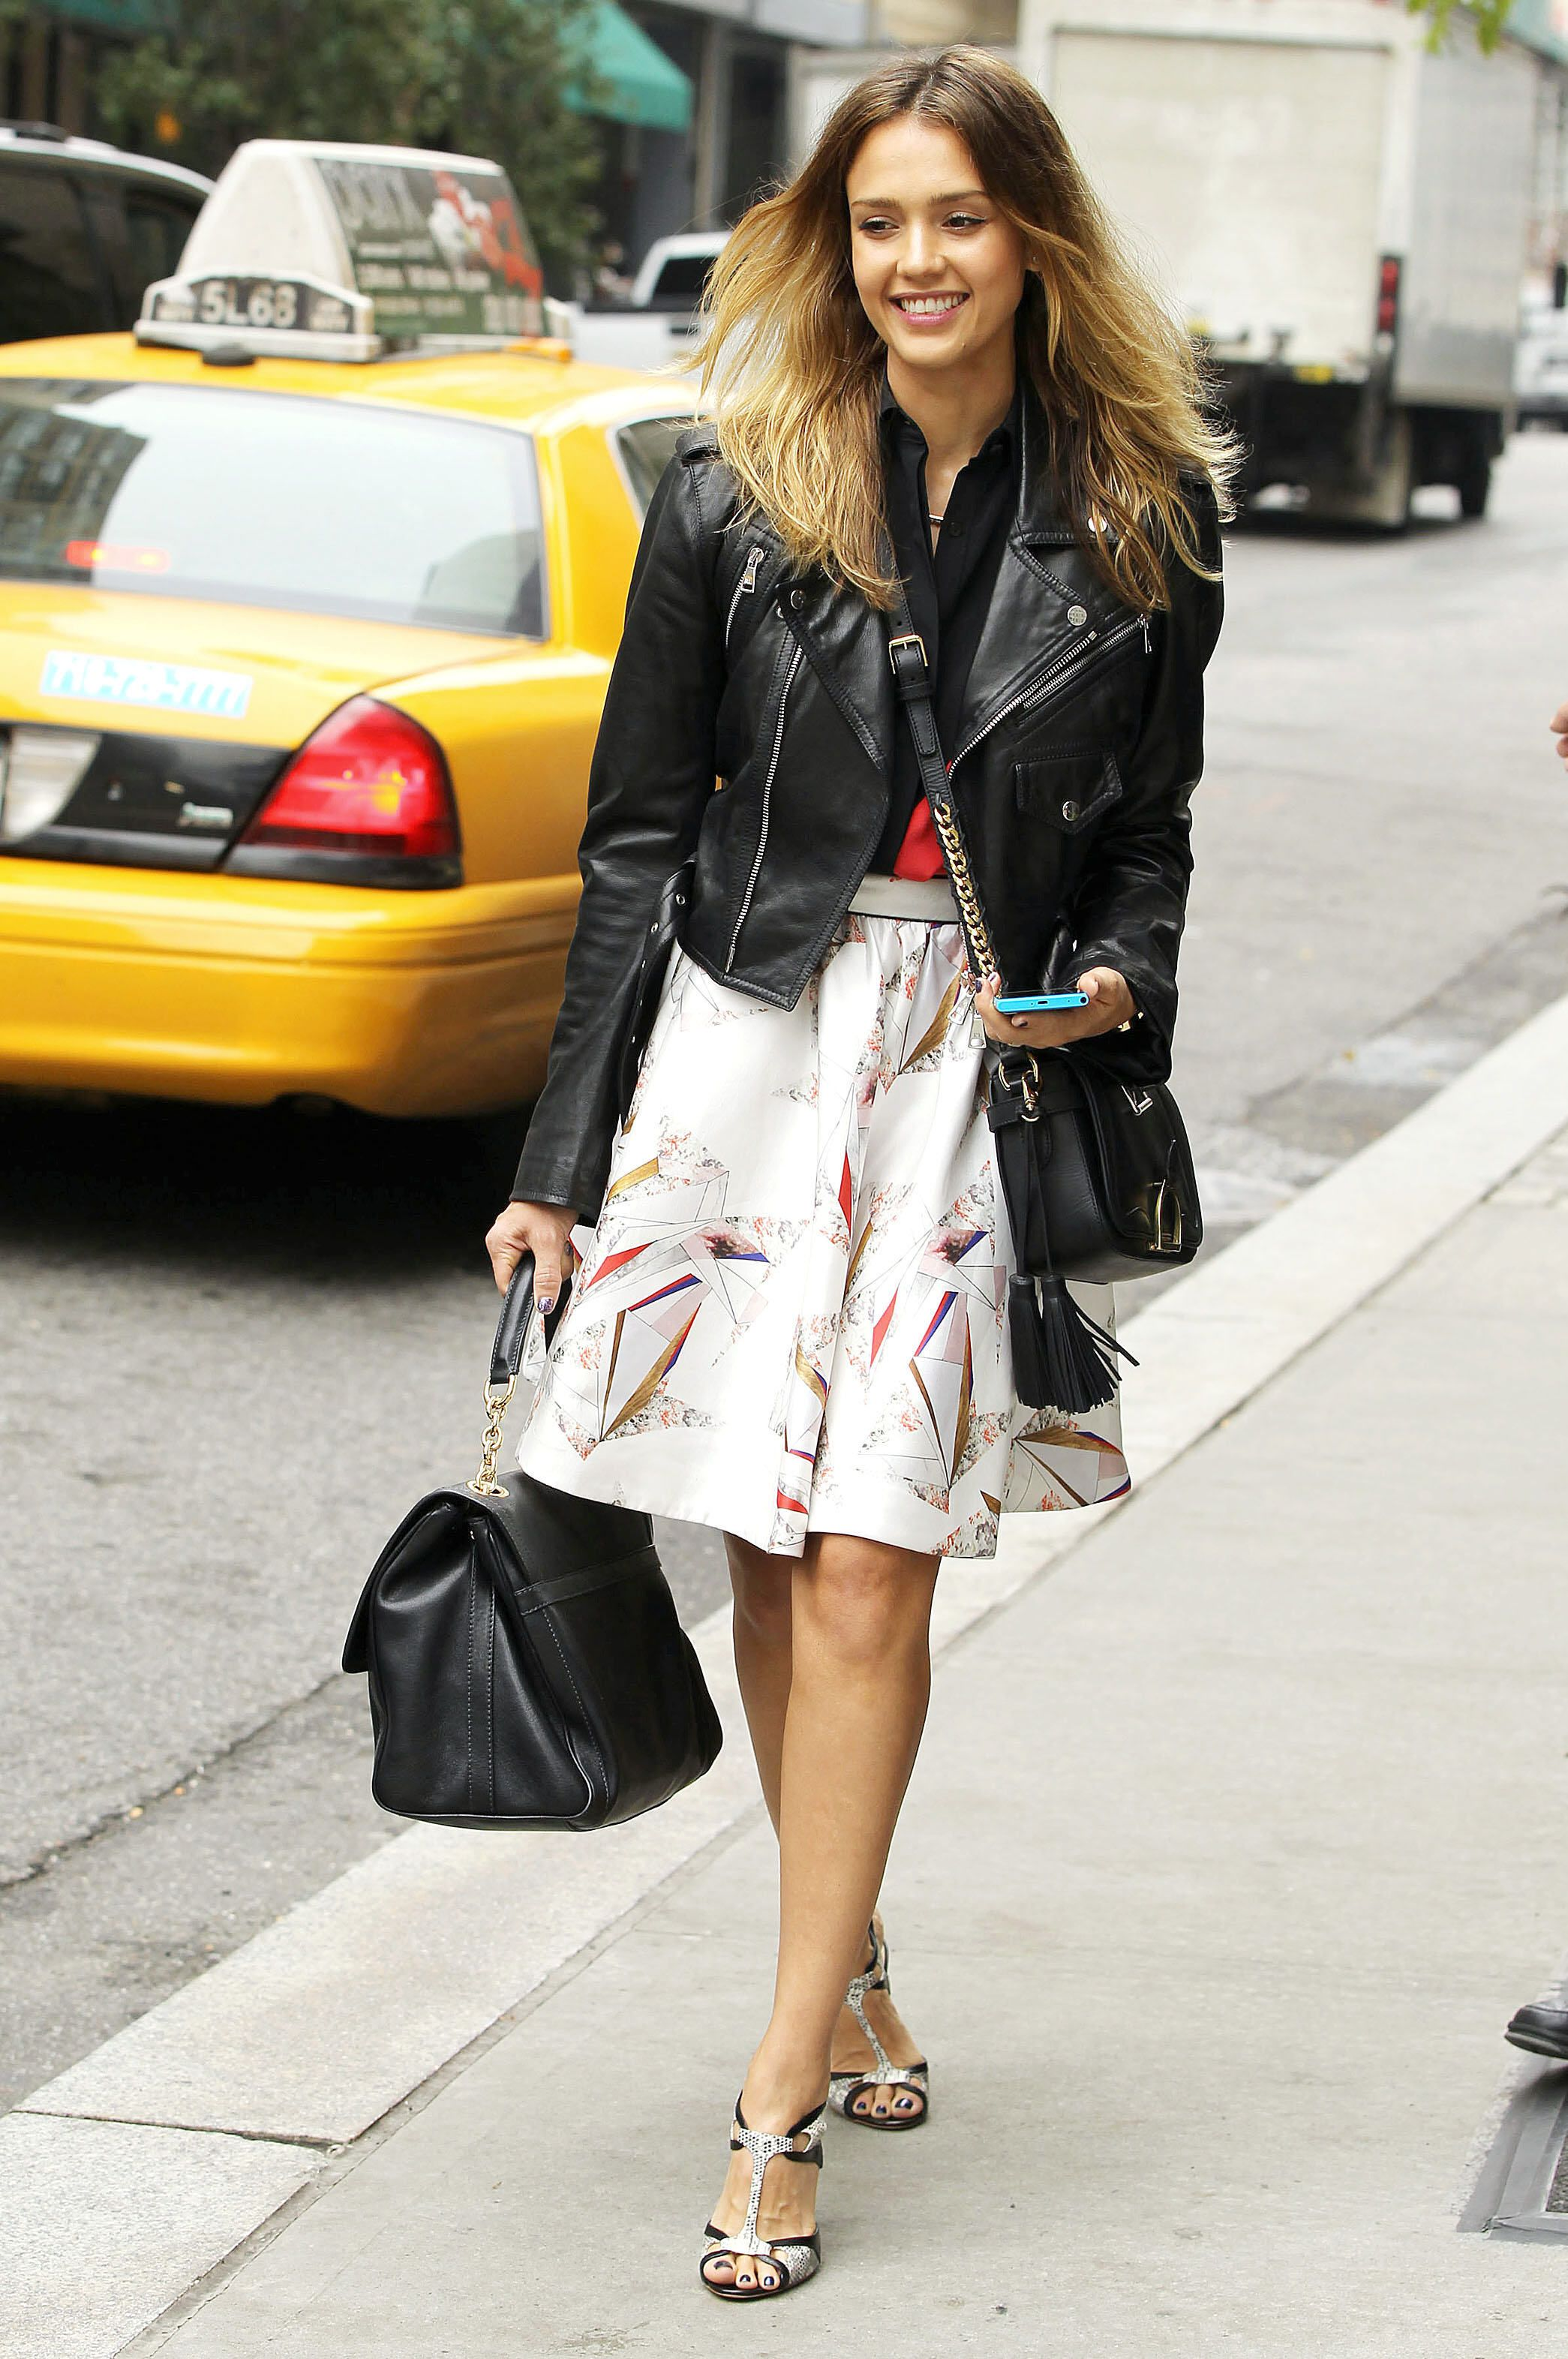 Style watch celebrity spring looks with leather jacket Fashion celebrity street style